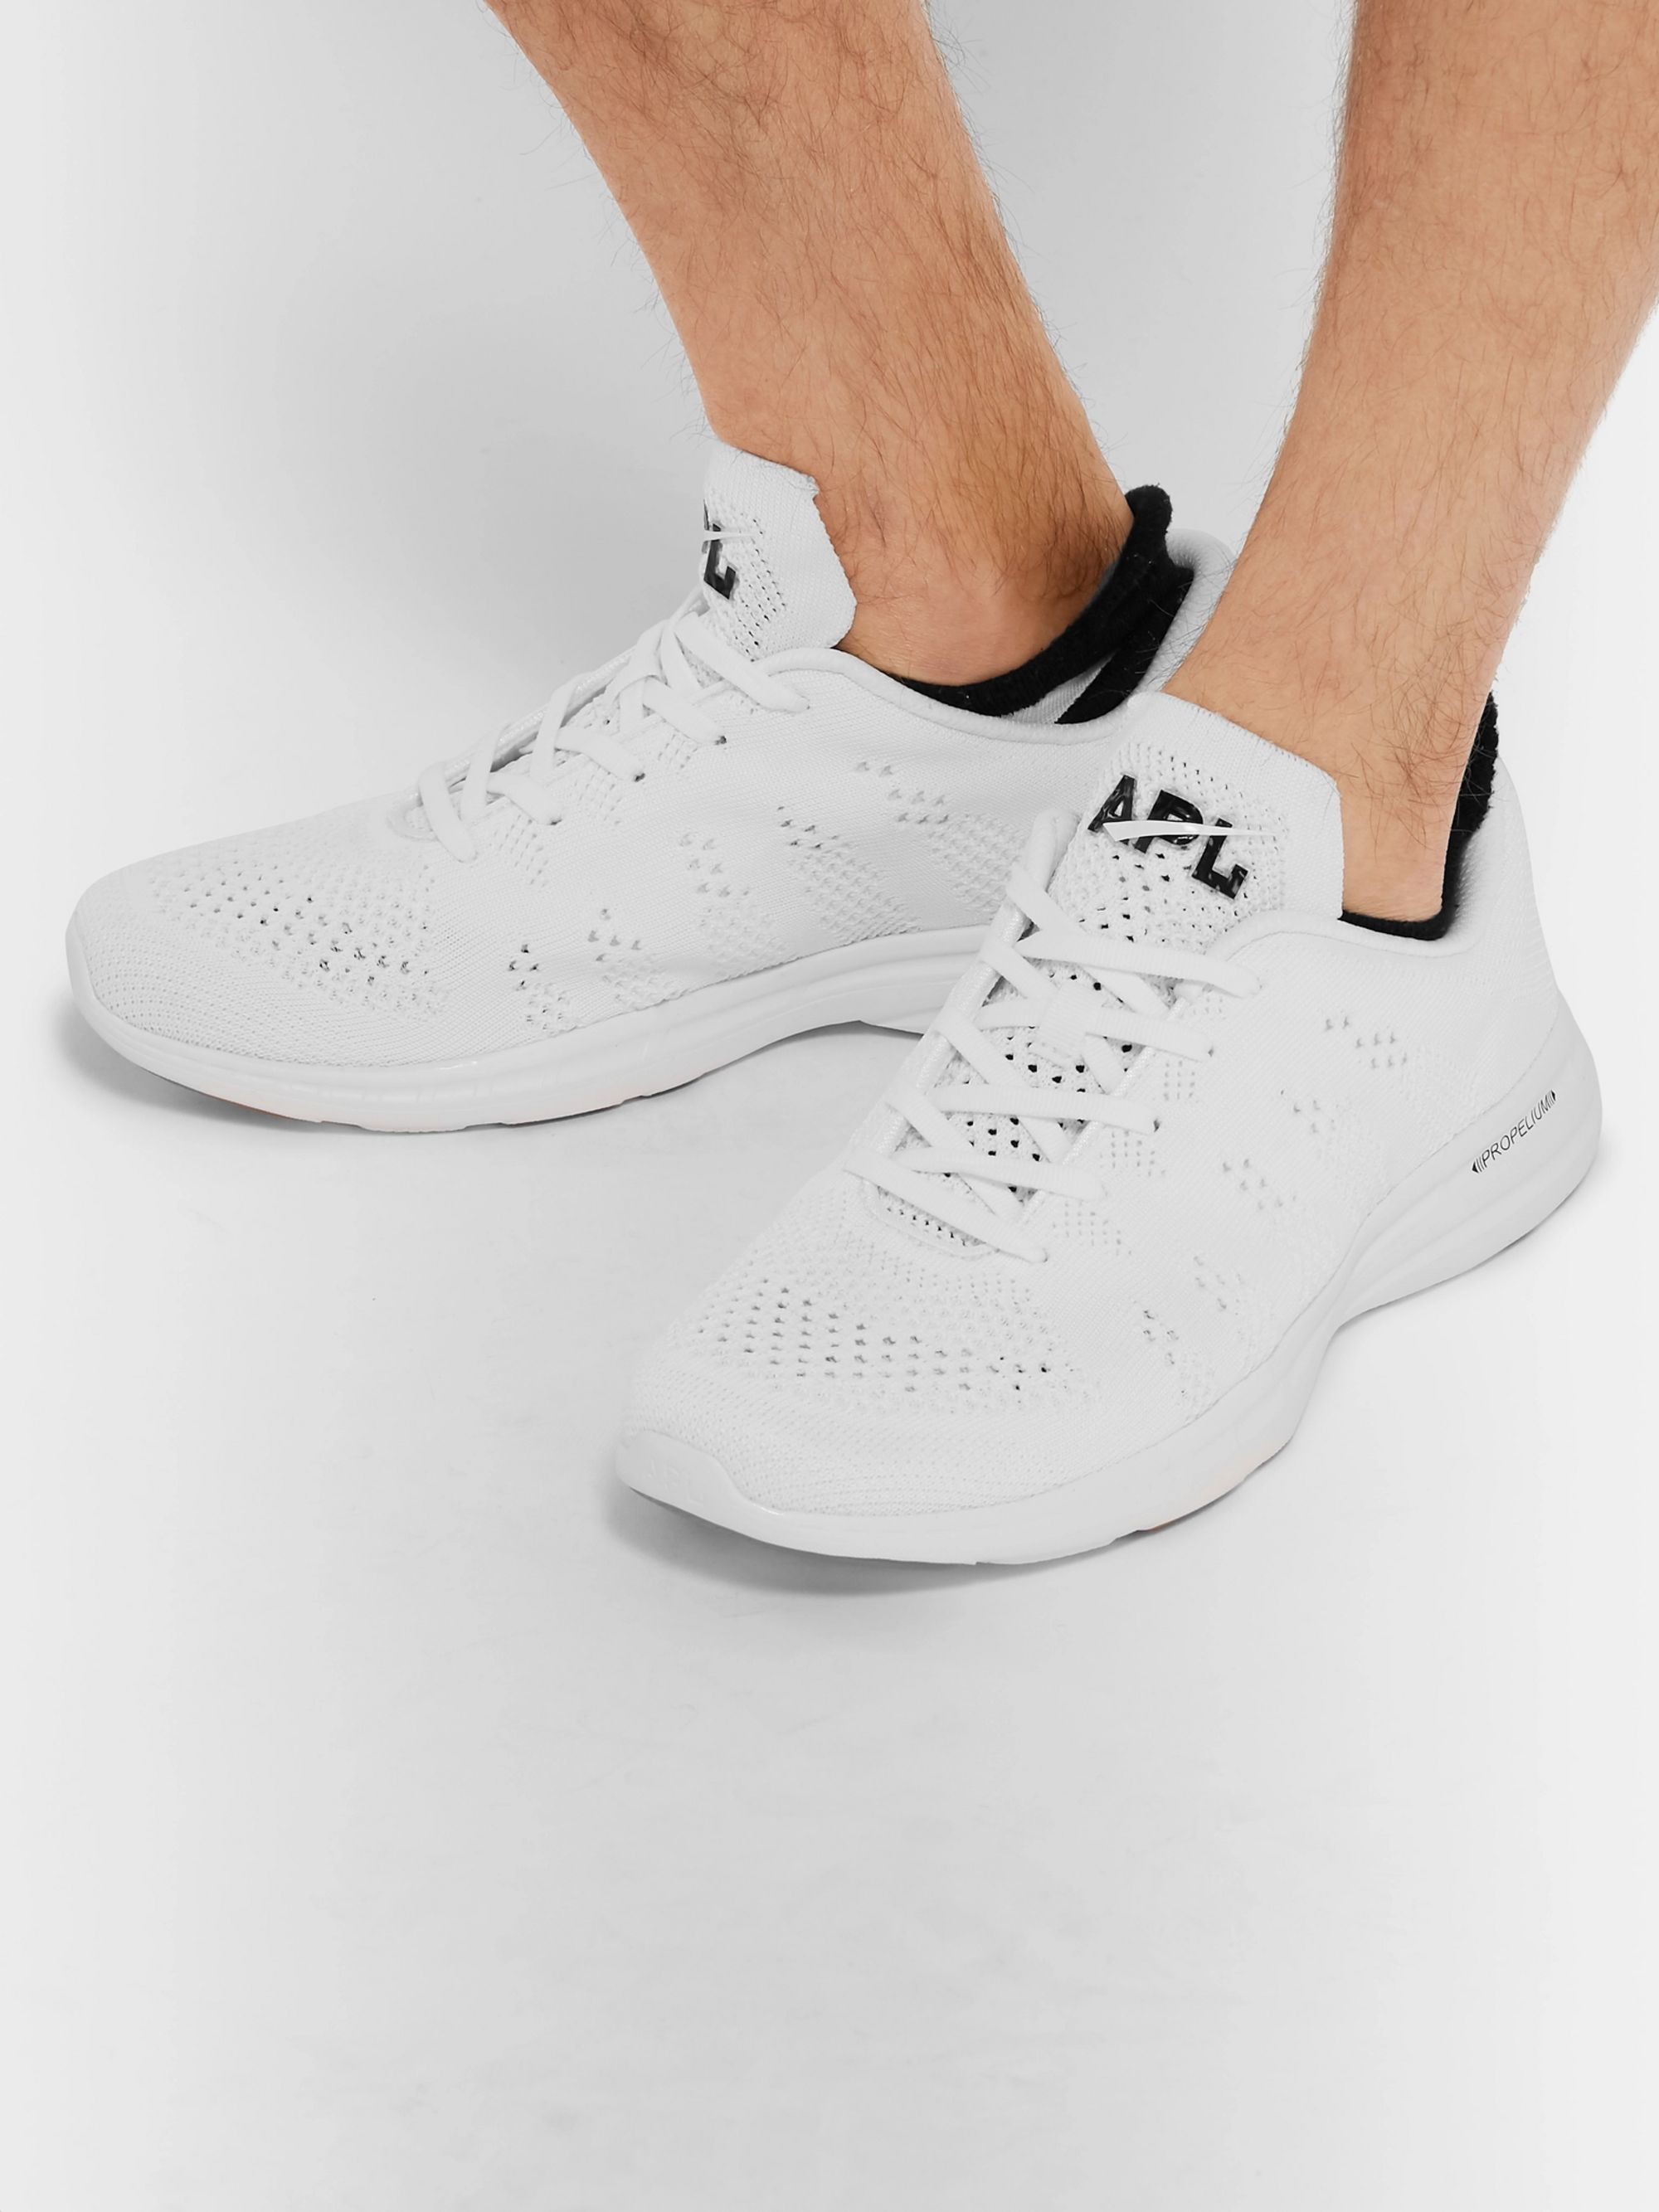 APL Athletic Propulsion Labs Pro TechLoom Running Sneakers